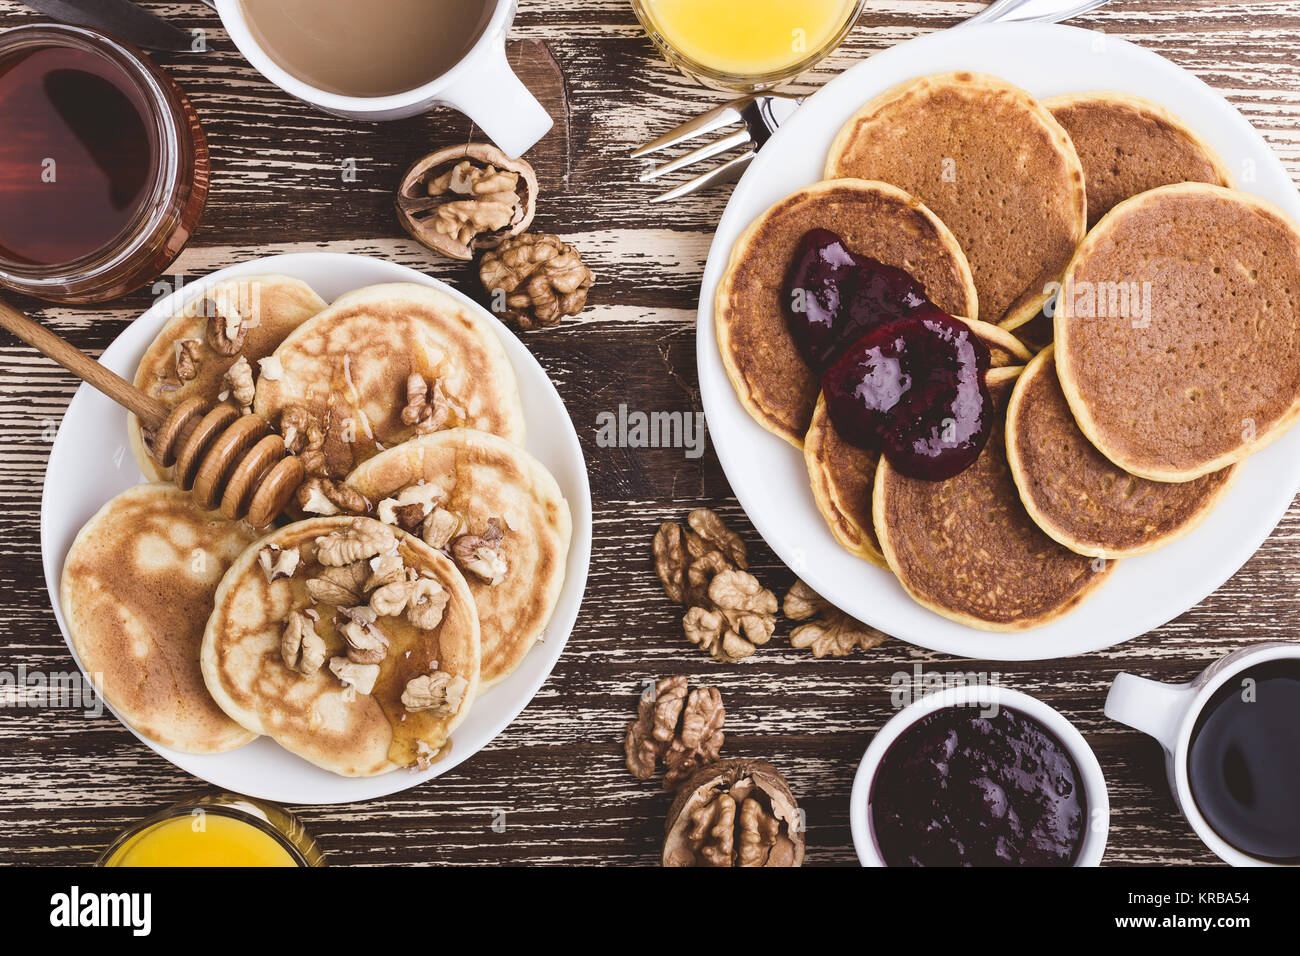 Pumpkin and buttermilk pancakes breakfast or brunch. Homemade   pancakes with berry jam, walnuts and honey, orange - Stock Image